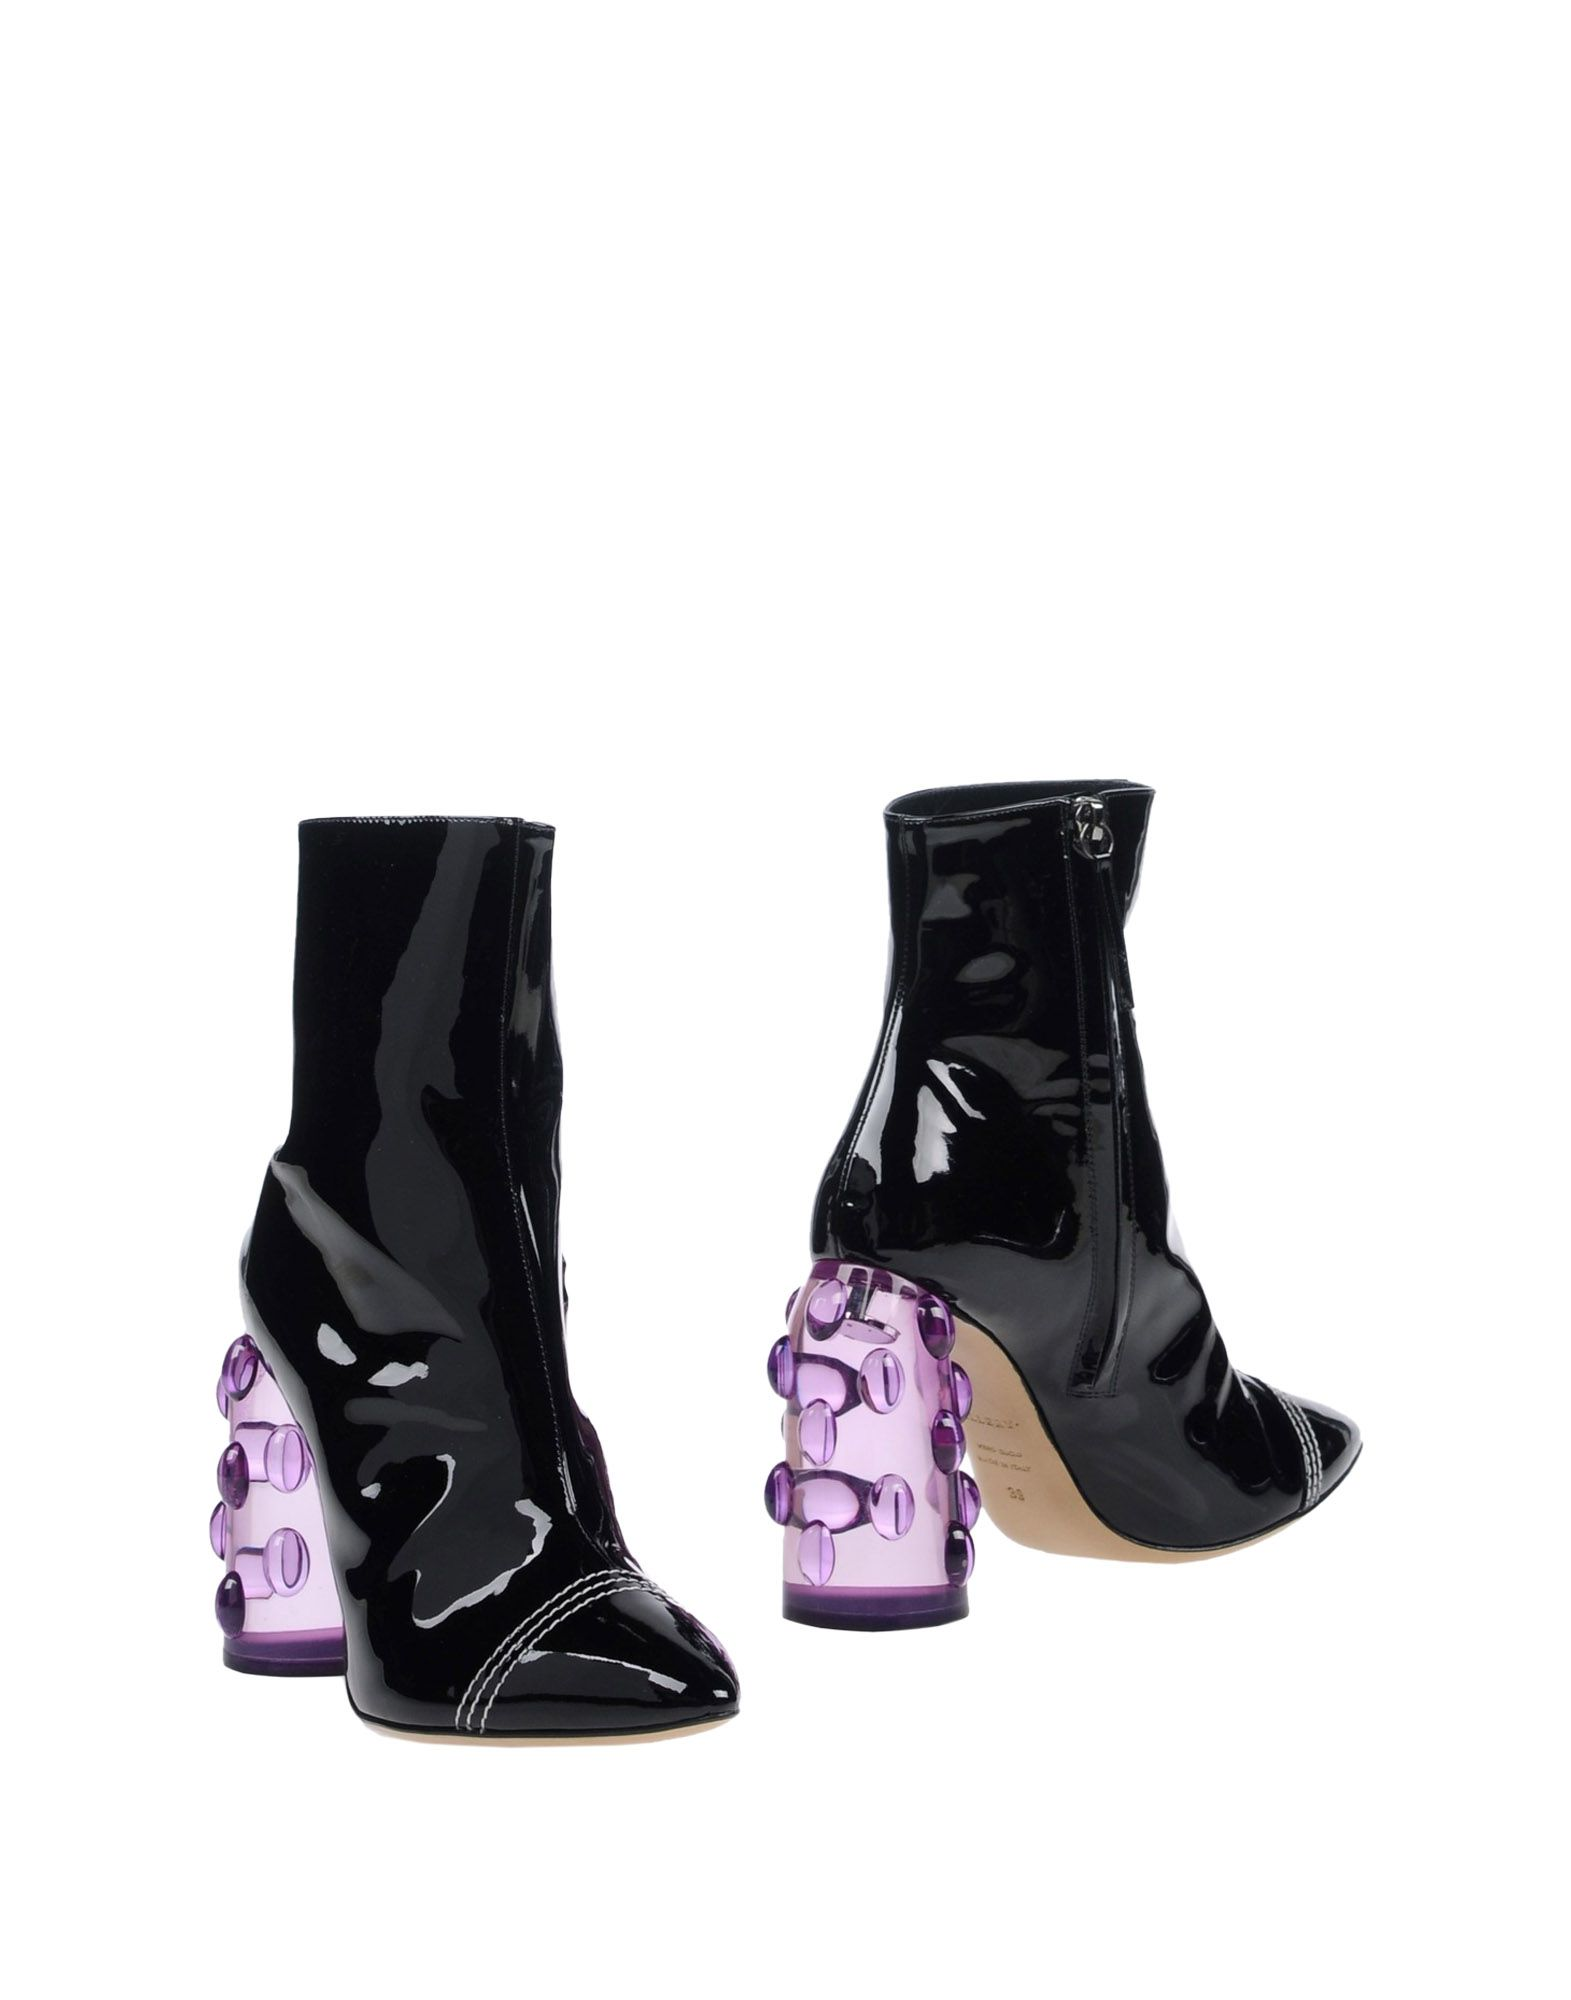 Ellery Ankle Boot Boots - Women Ellery Ankle Boots Boot online on  Australia - 11448574CA 5a3fc1